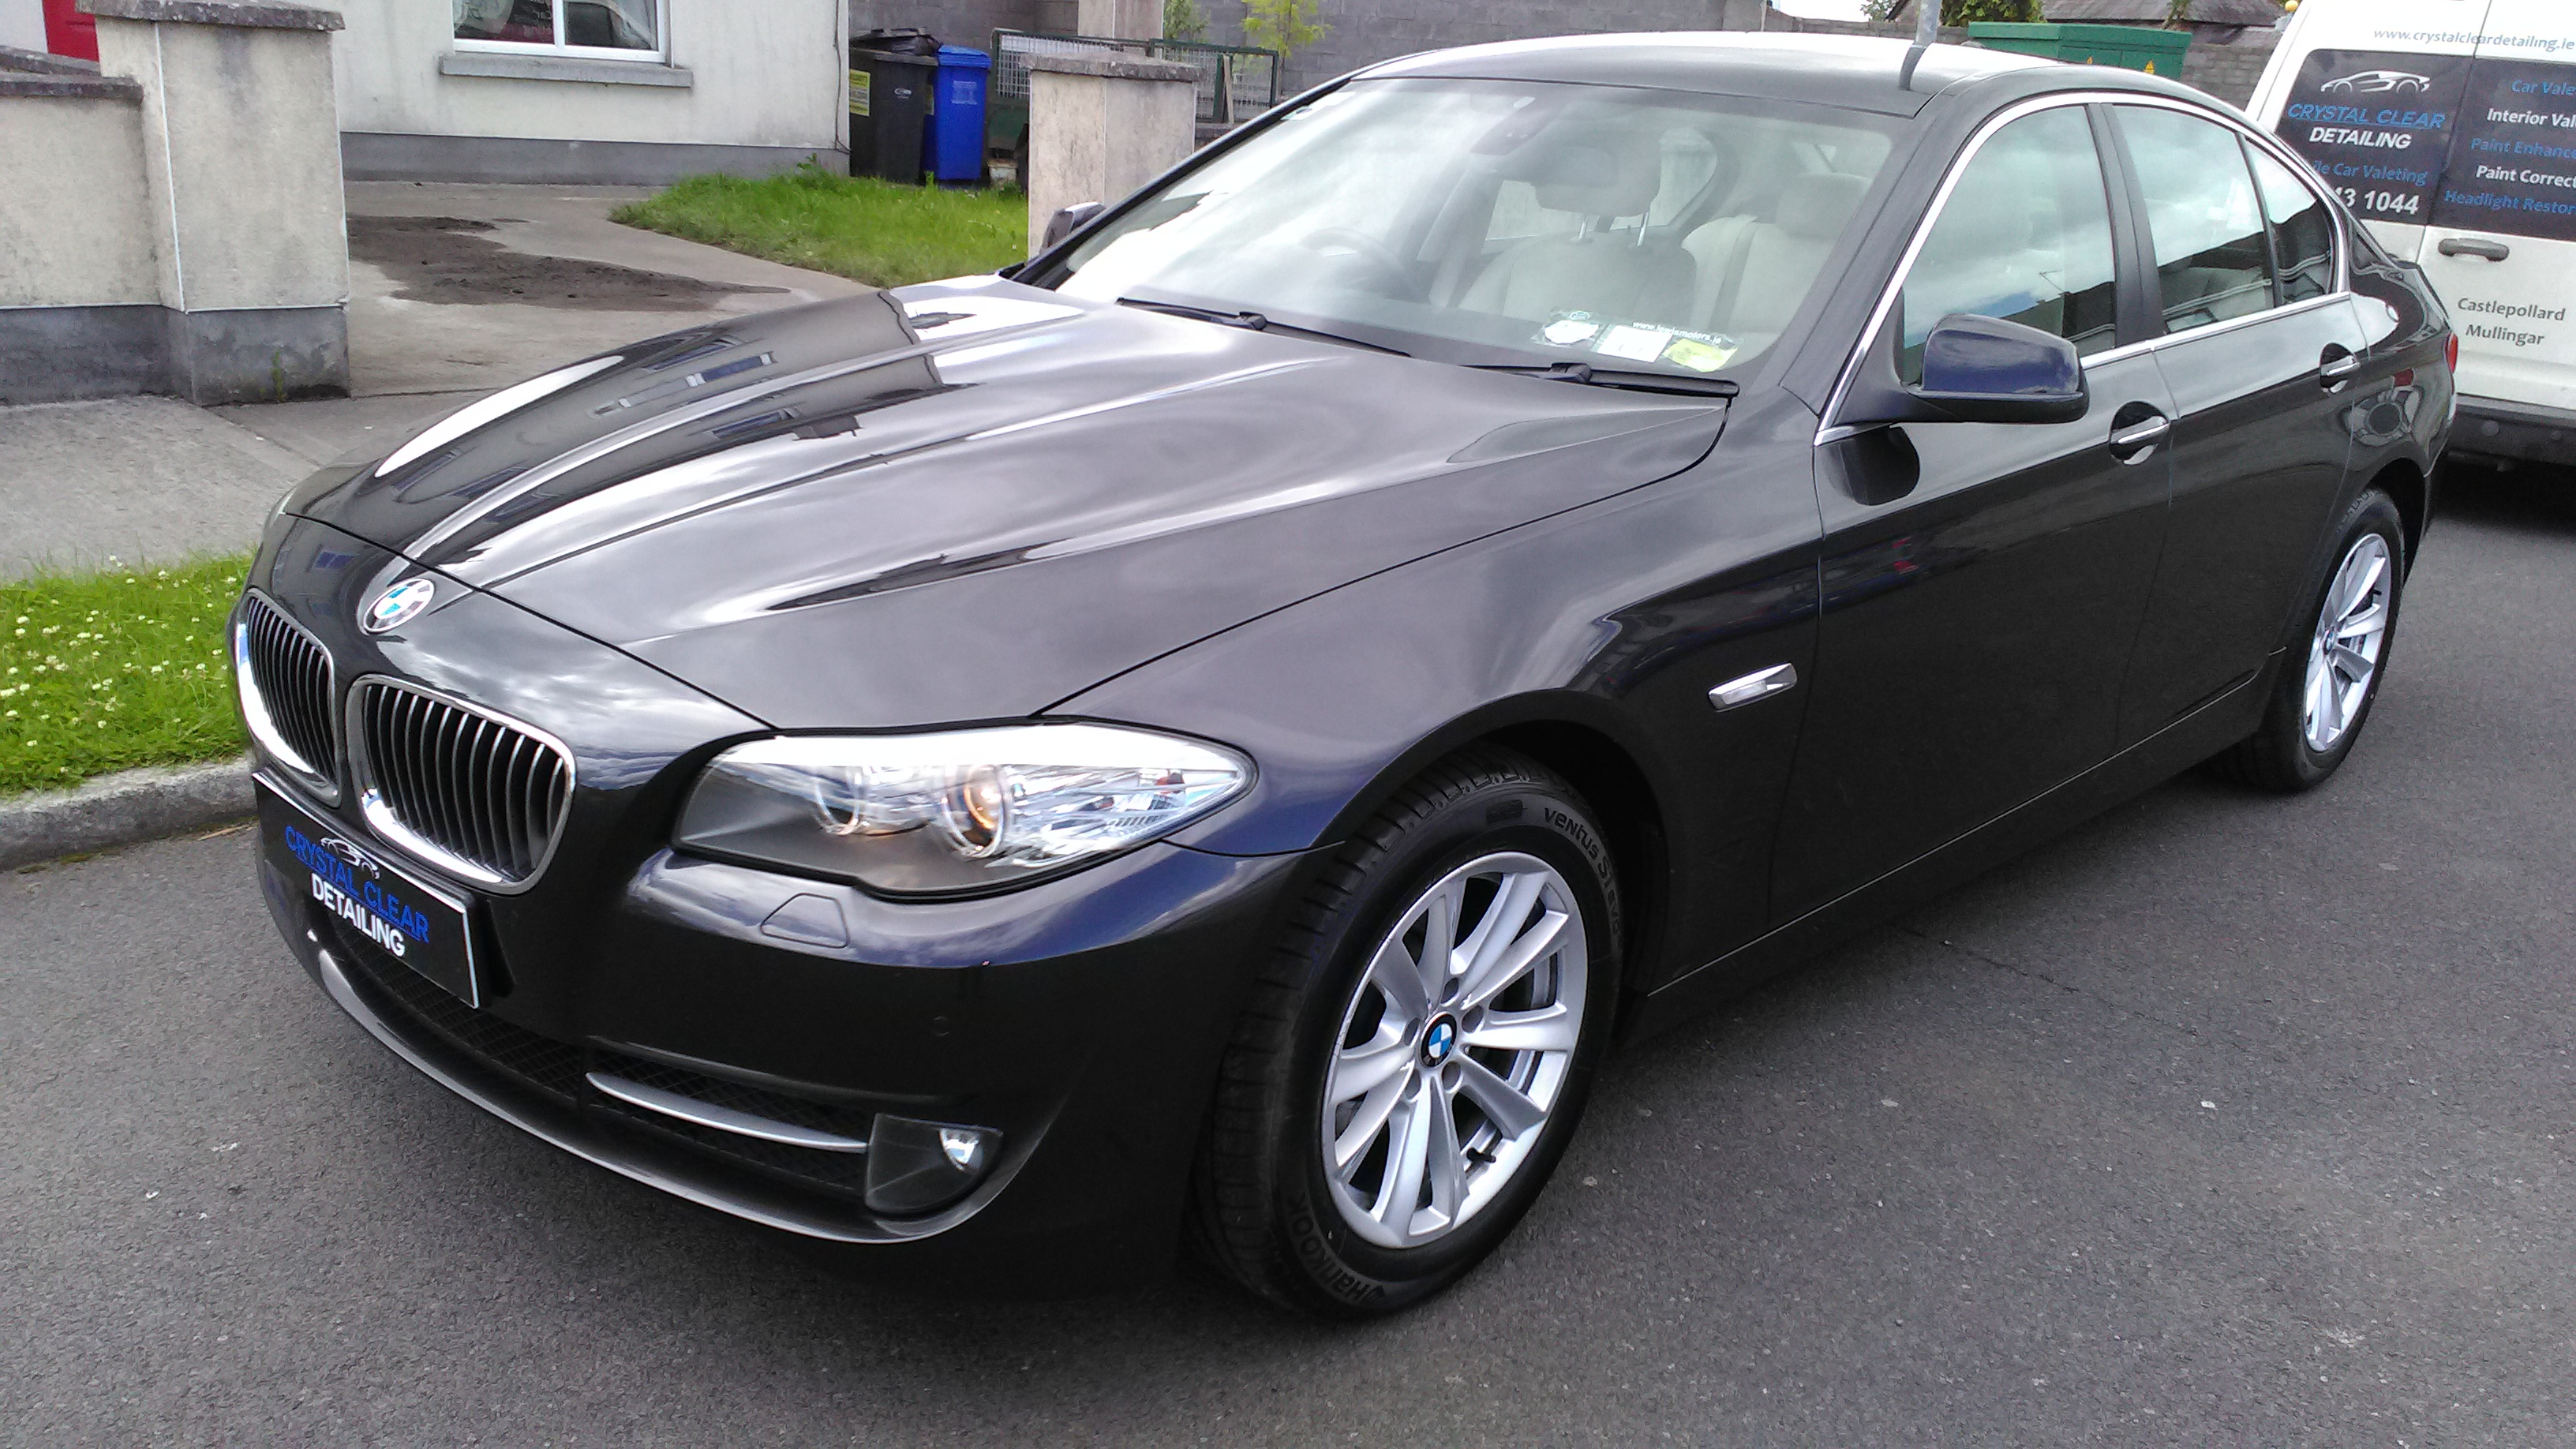 BMW 520D - Full Valet